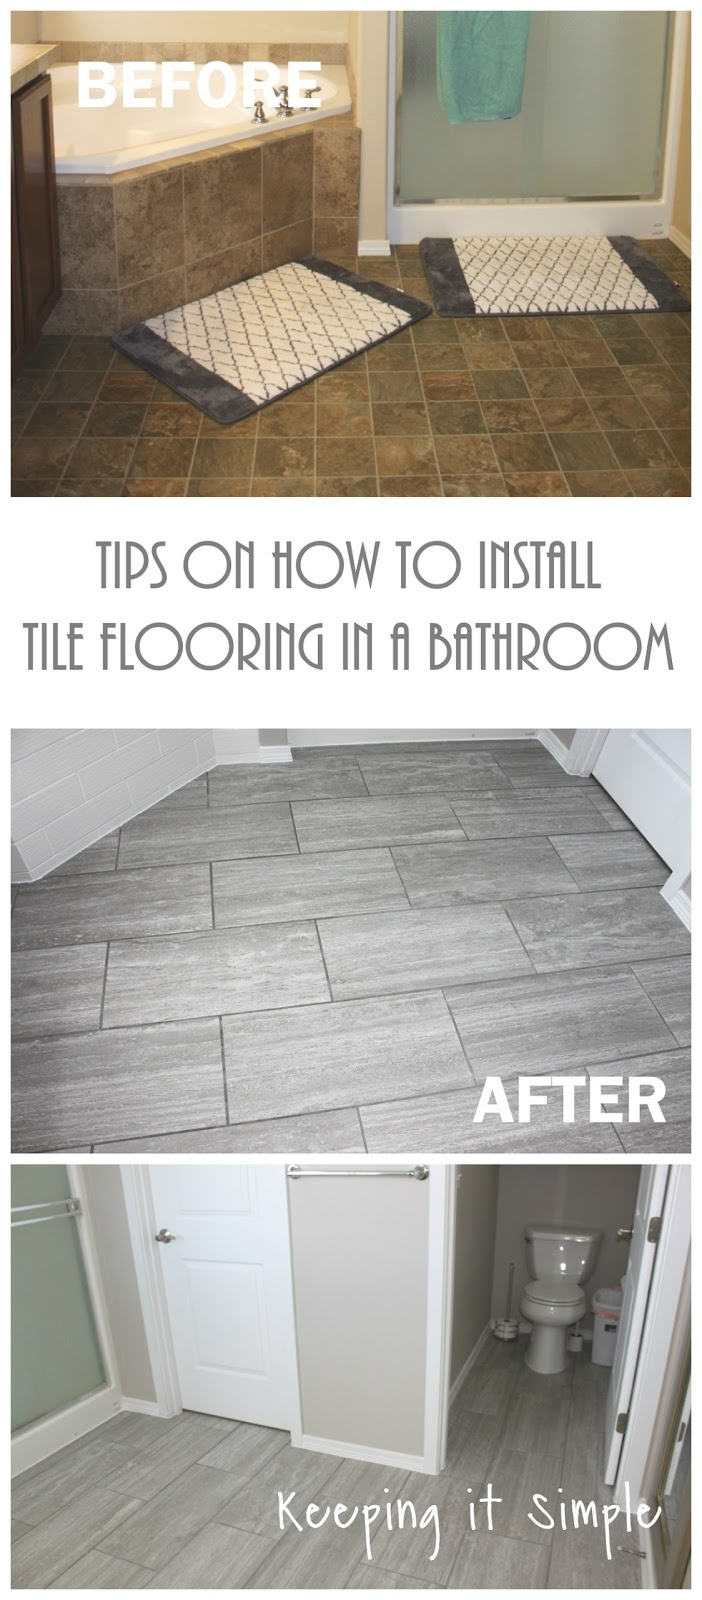 Tips on how to install tile flooring in a bathroom with ridgemont tips on how to install tile flooring in a bathroom with ridgemont silver tiles keeping it simple crafts dailygadgetfo Choice Image